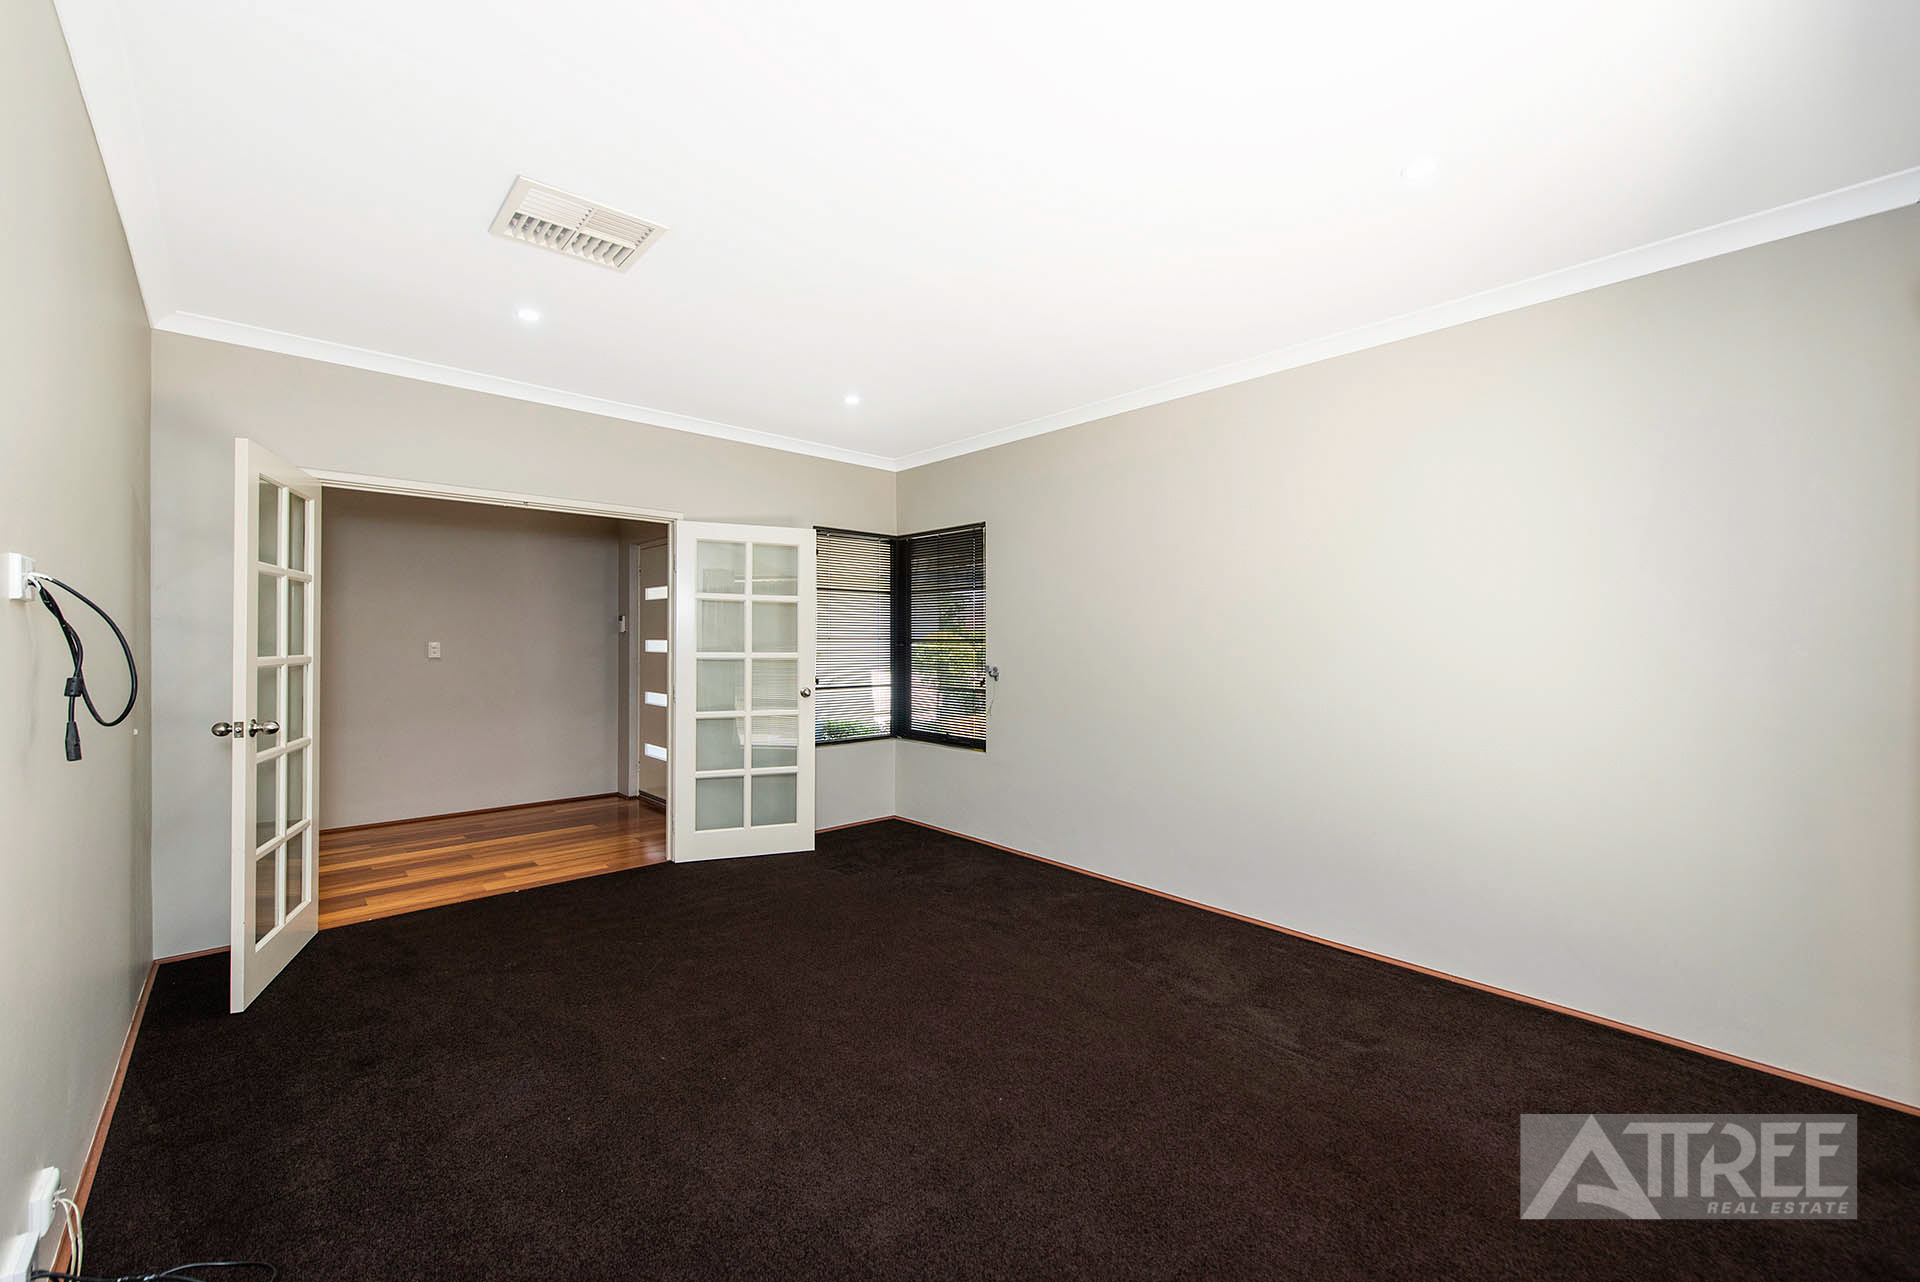 Property for sale in WATTLE GROVE, 84 Sheffield Road : Attree Real Estate